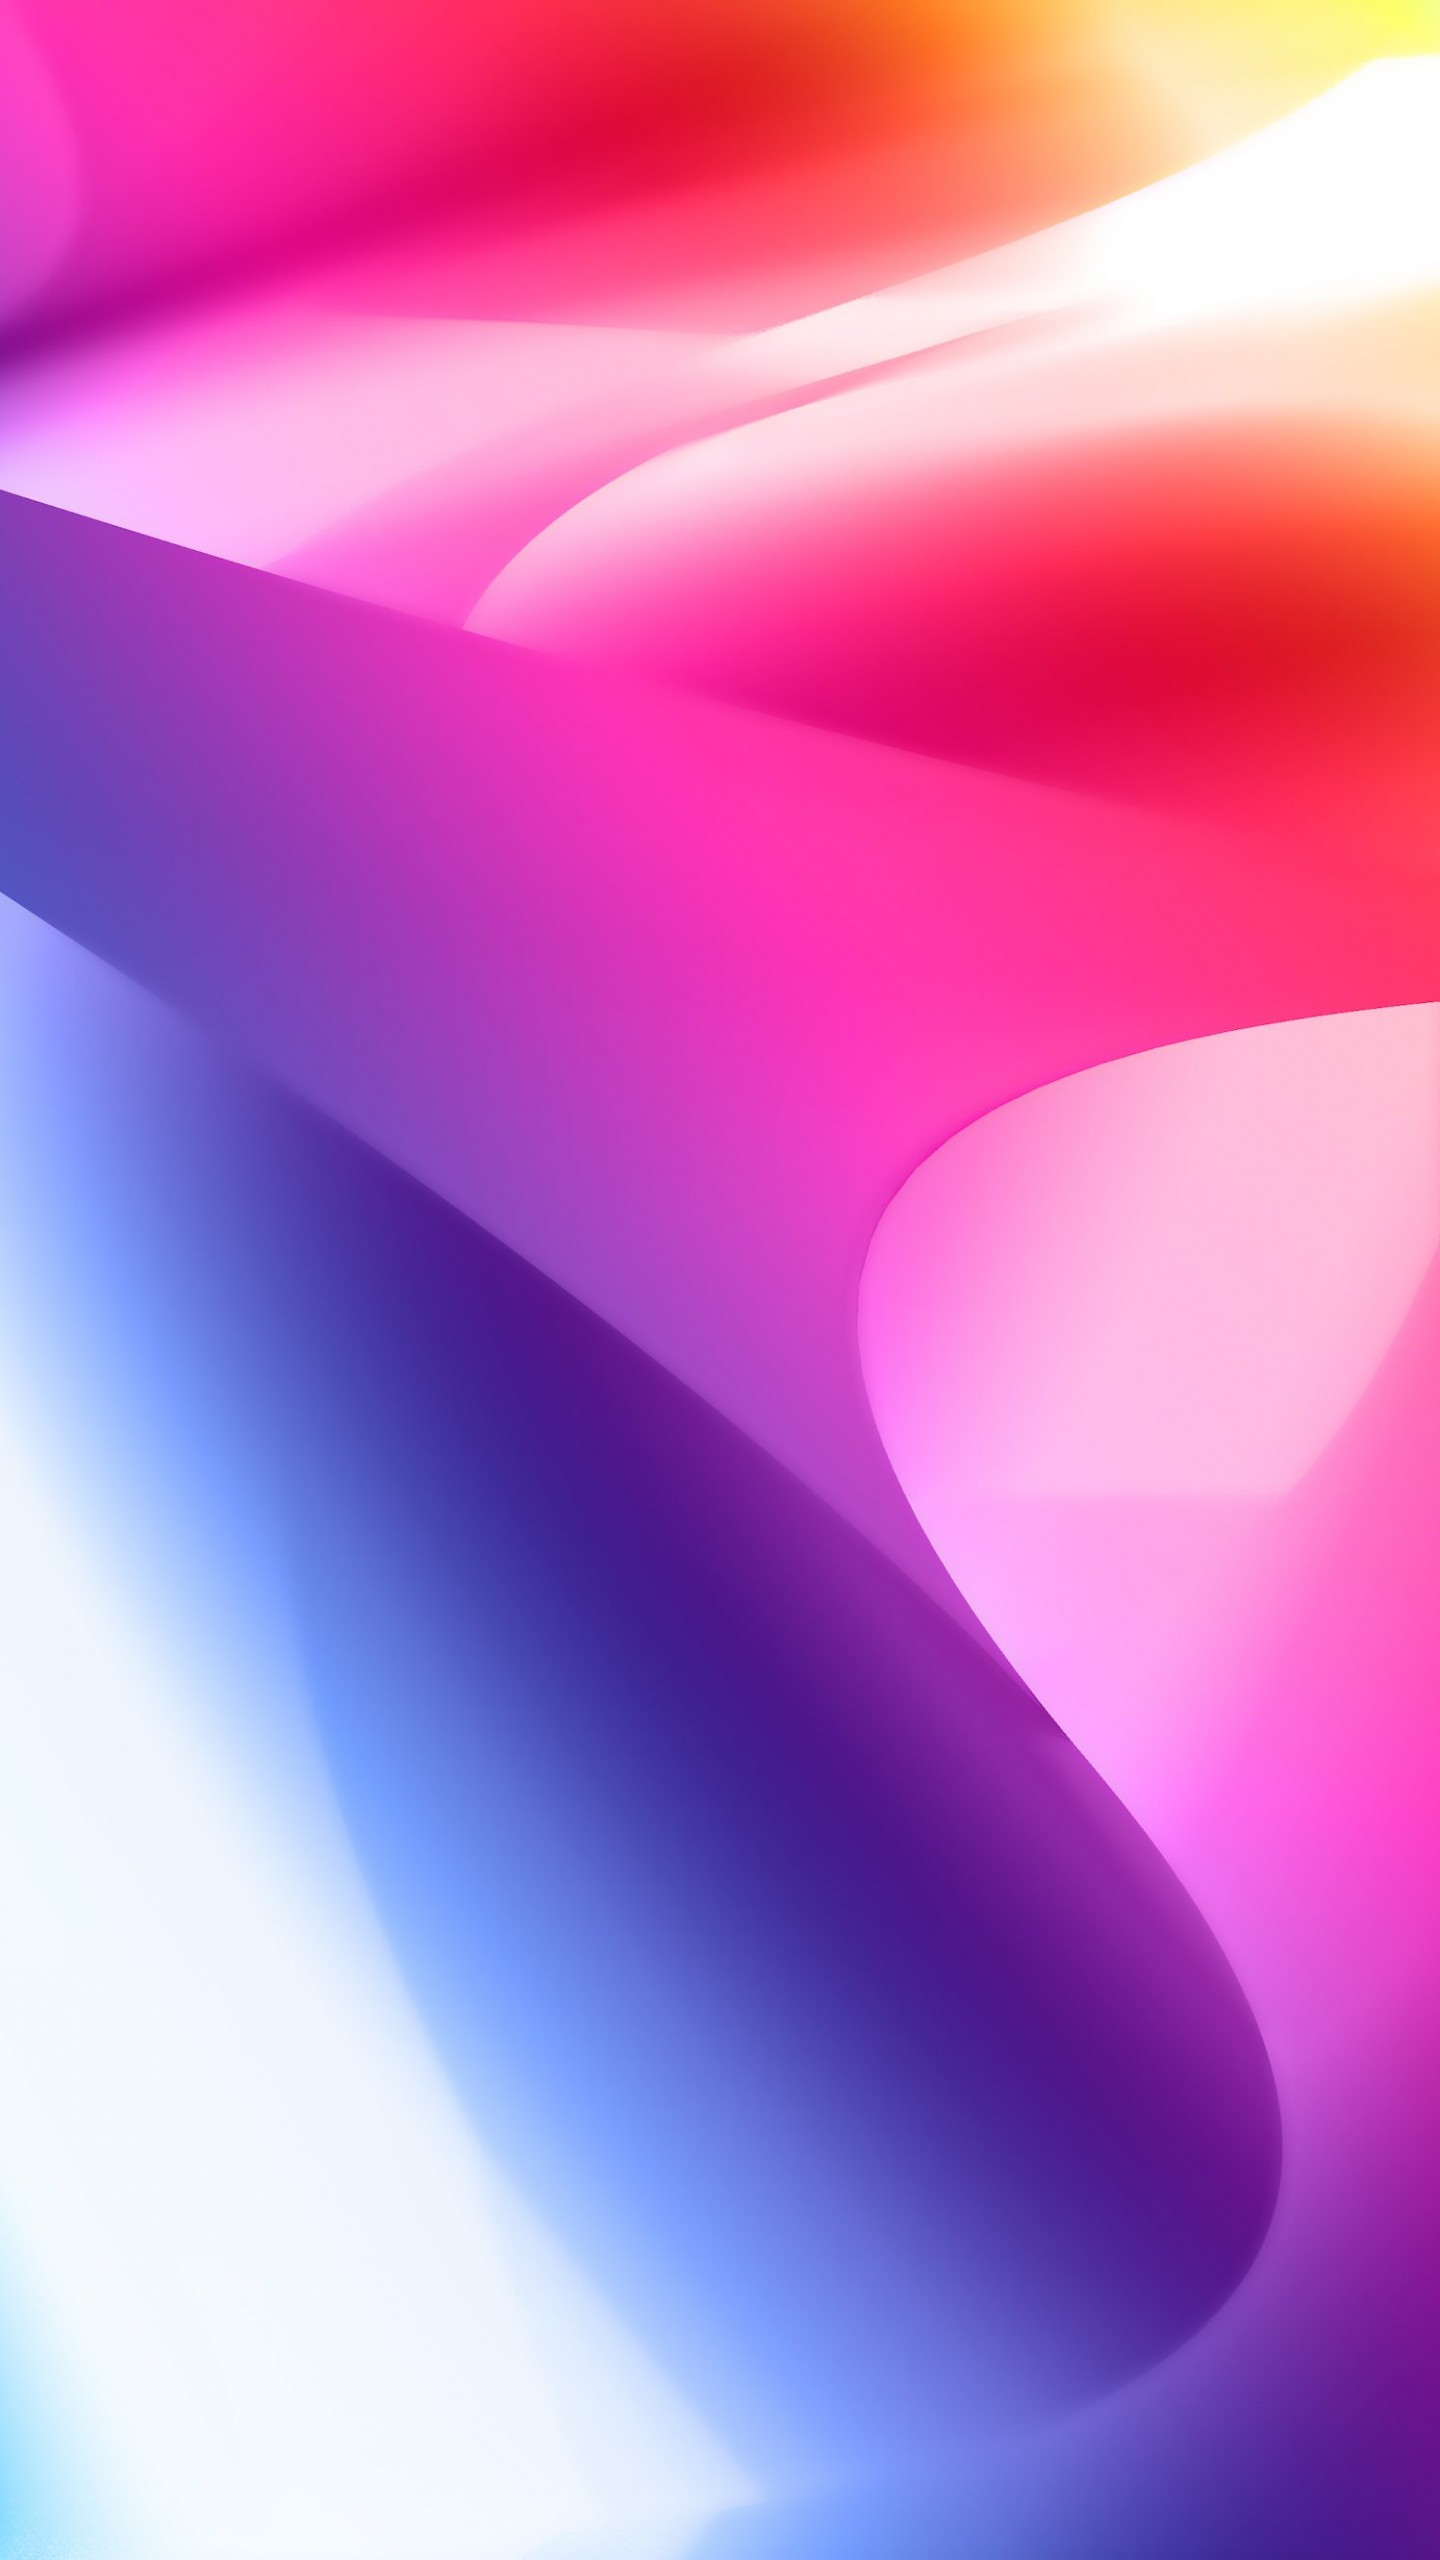 colorful smoke hd wallpaper for galaxy s6 hdwallpapers net - my blog